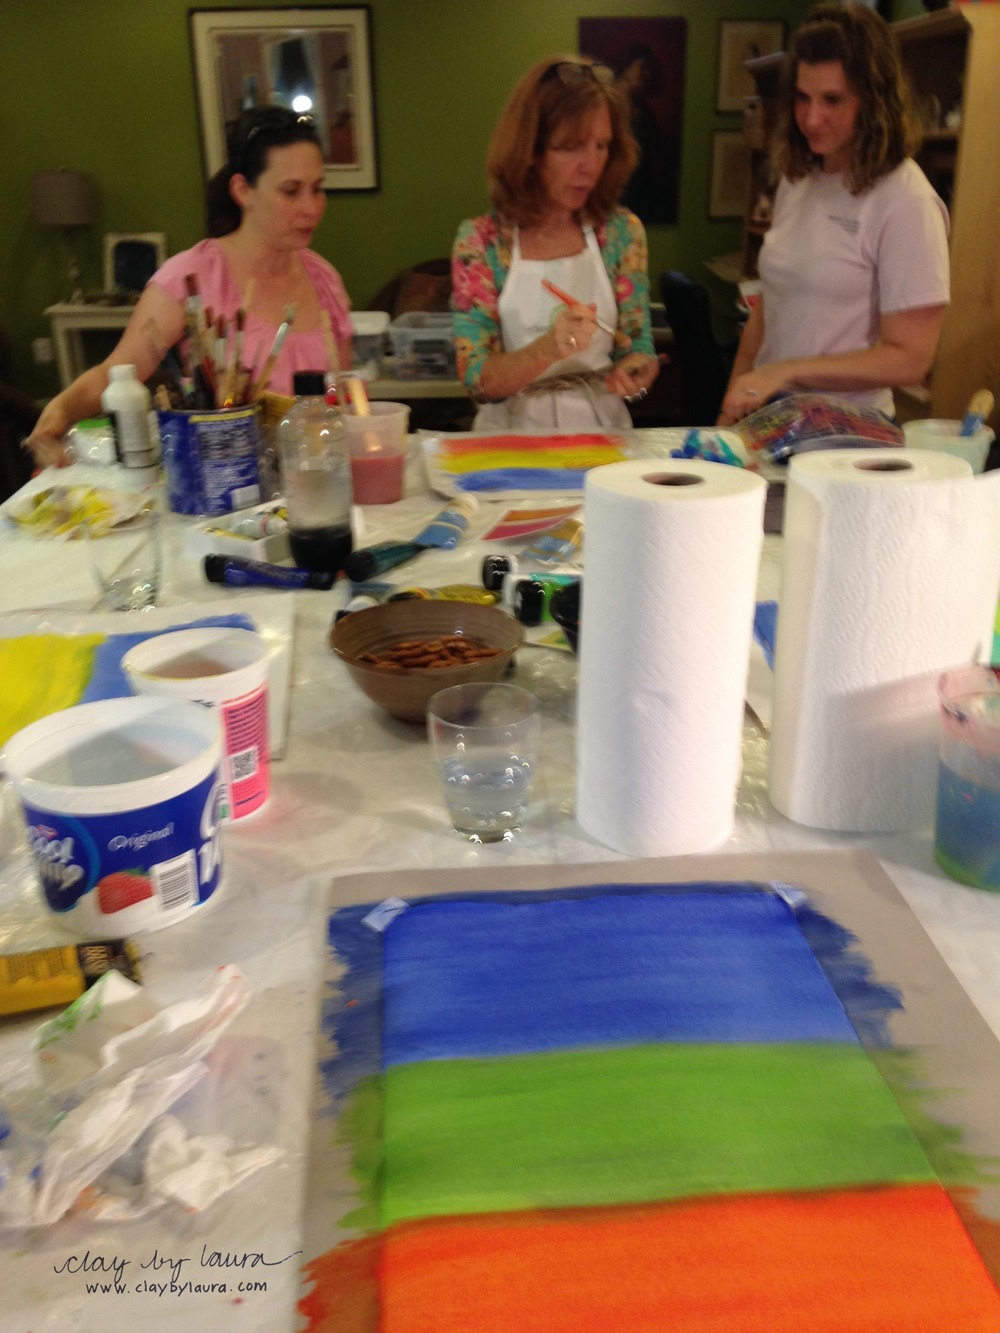 Cathy showed us work by Mark Rothko as inspiration for our first layer of color on the watercolor paper.